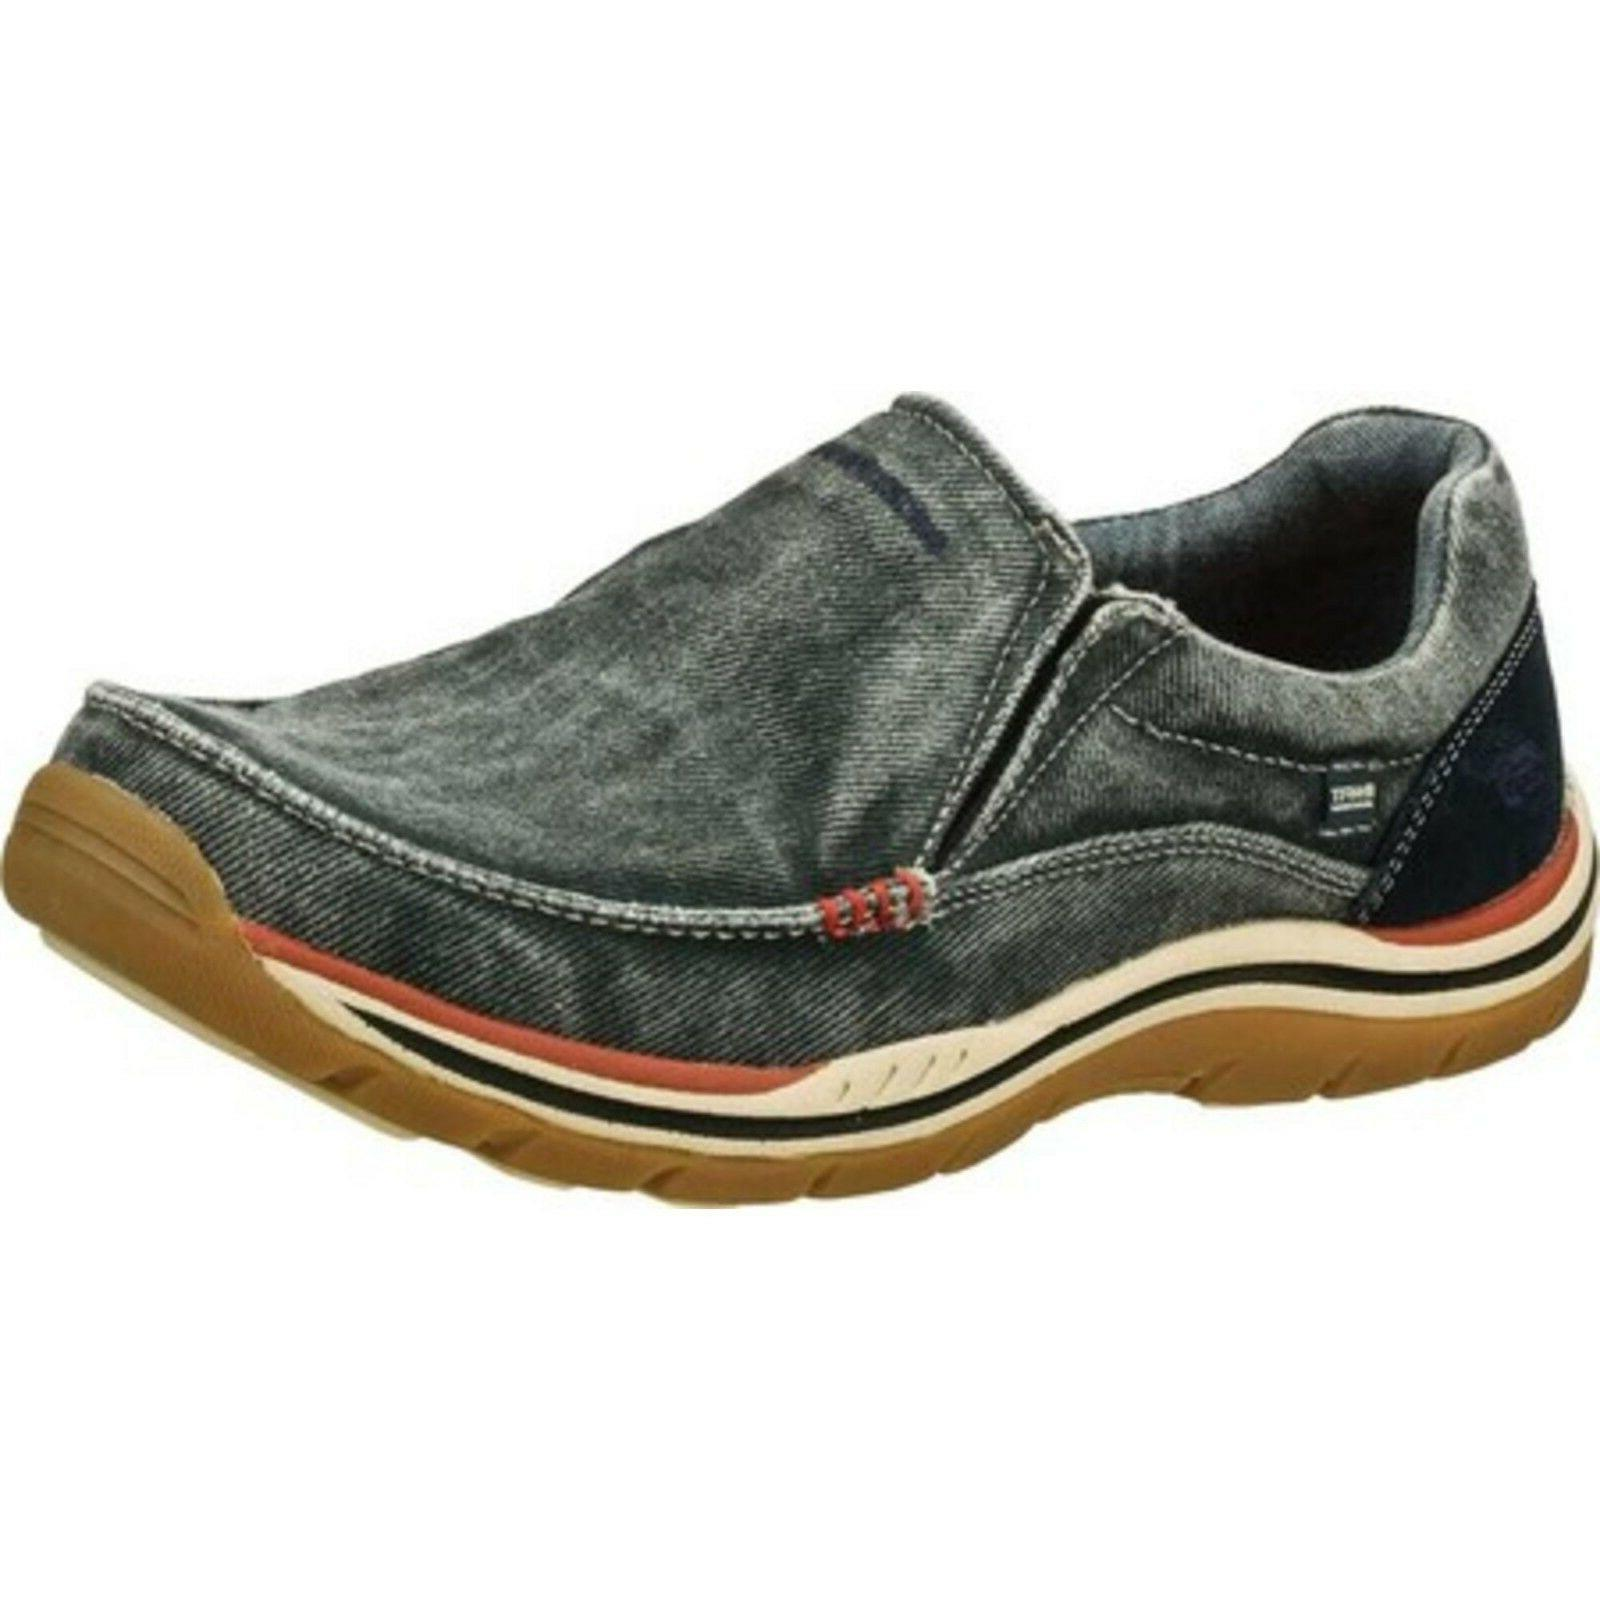 Skechers Relaxed Expected Avillo slip on casual